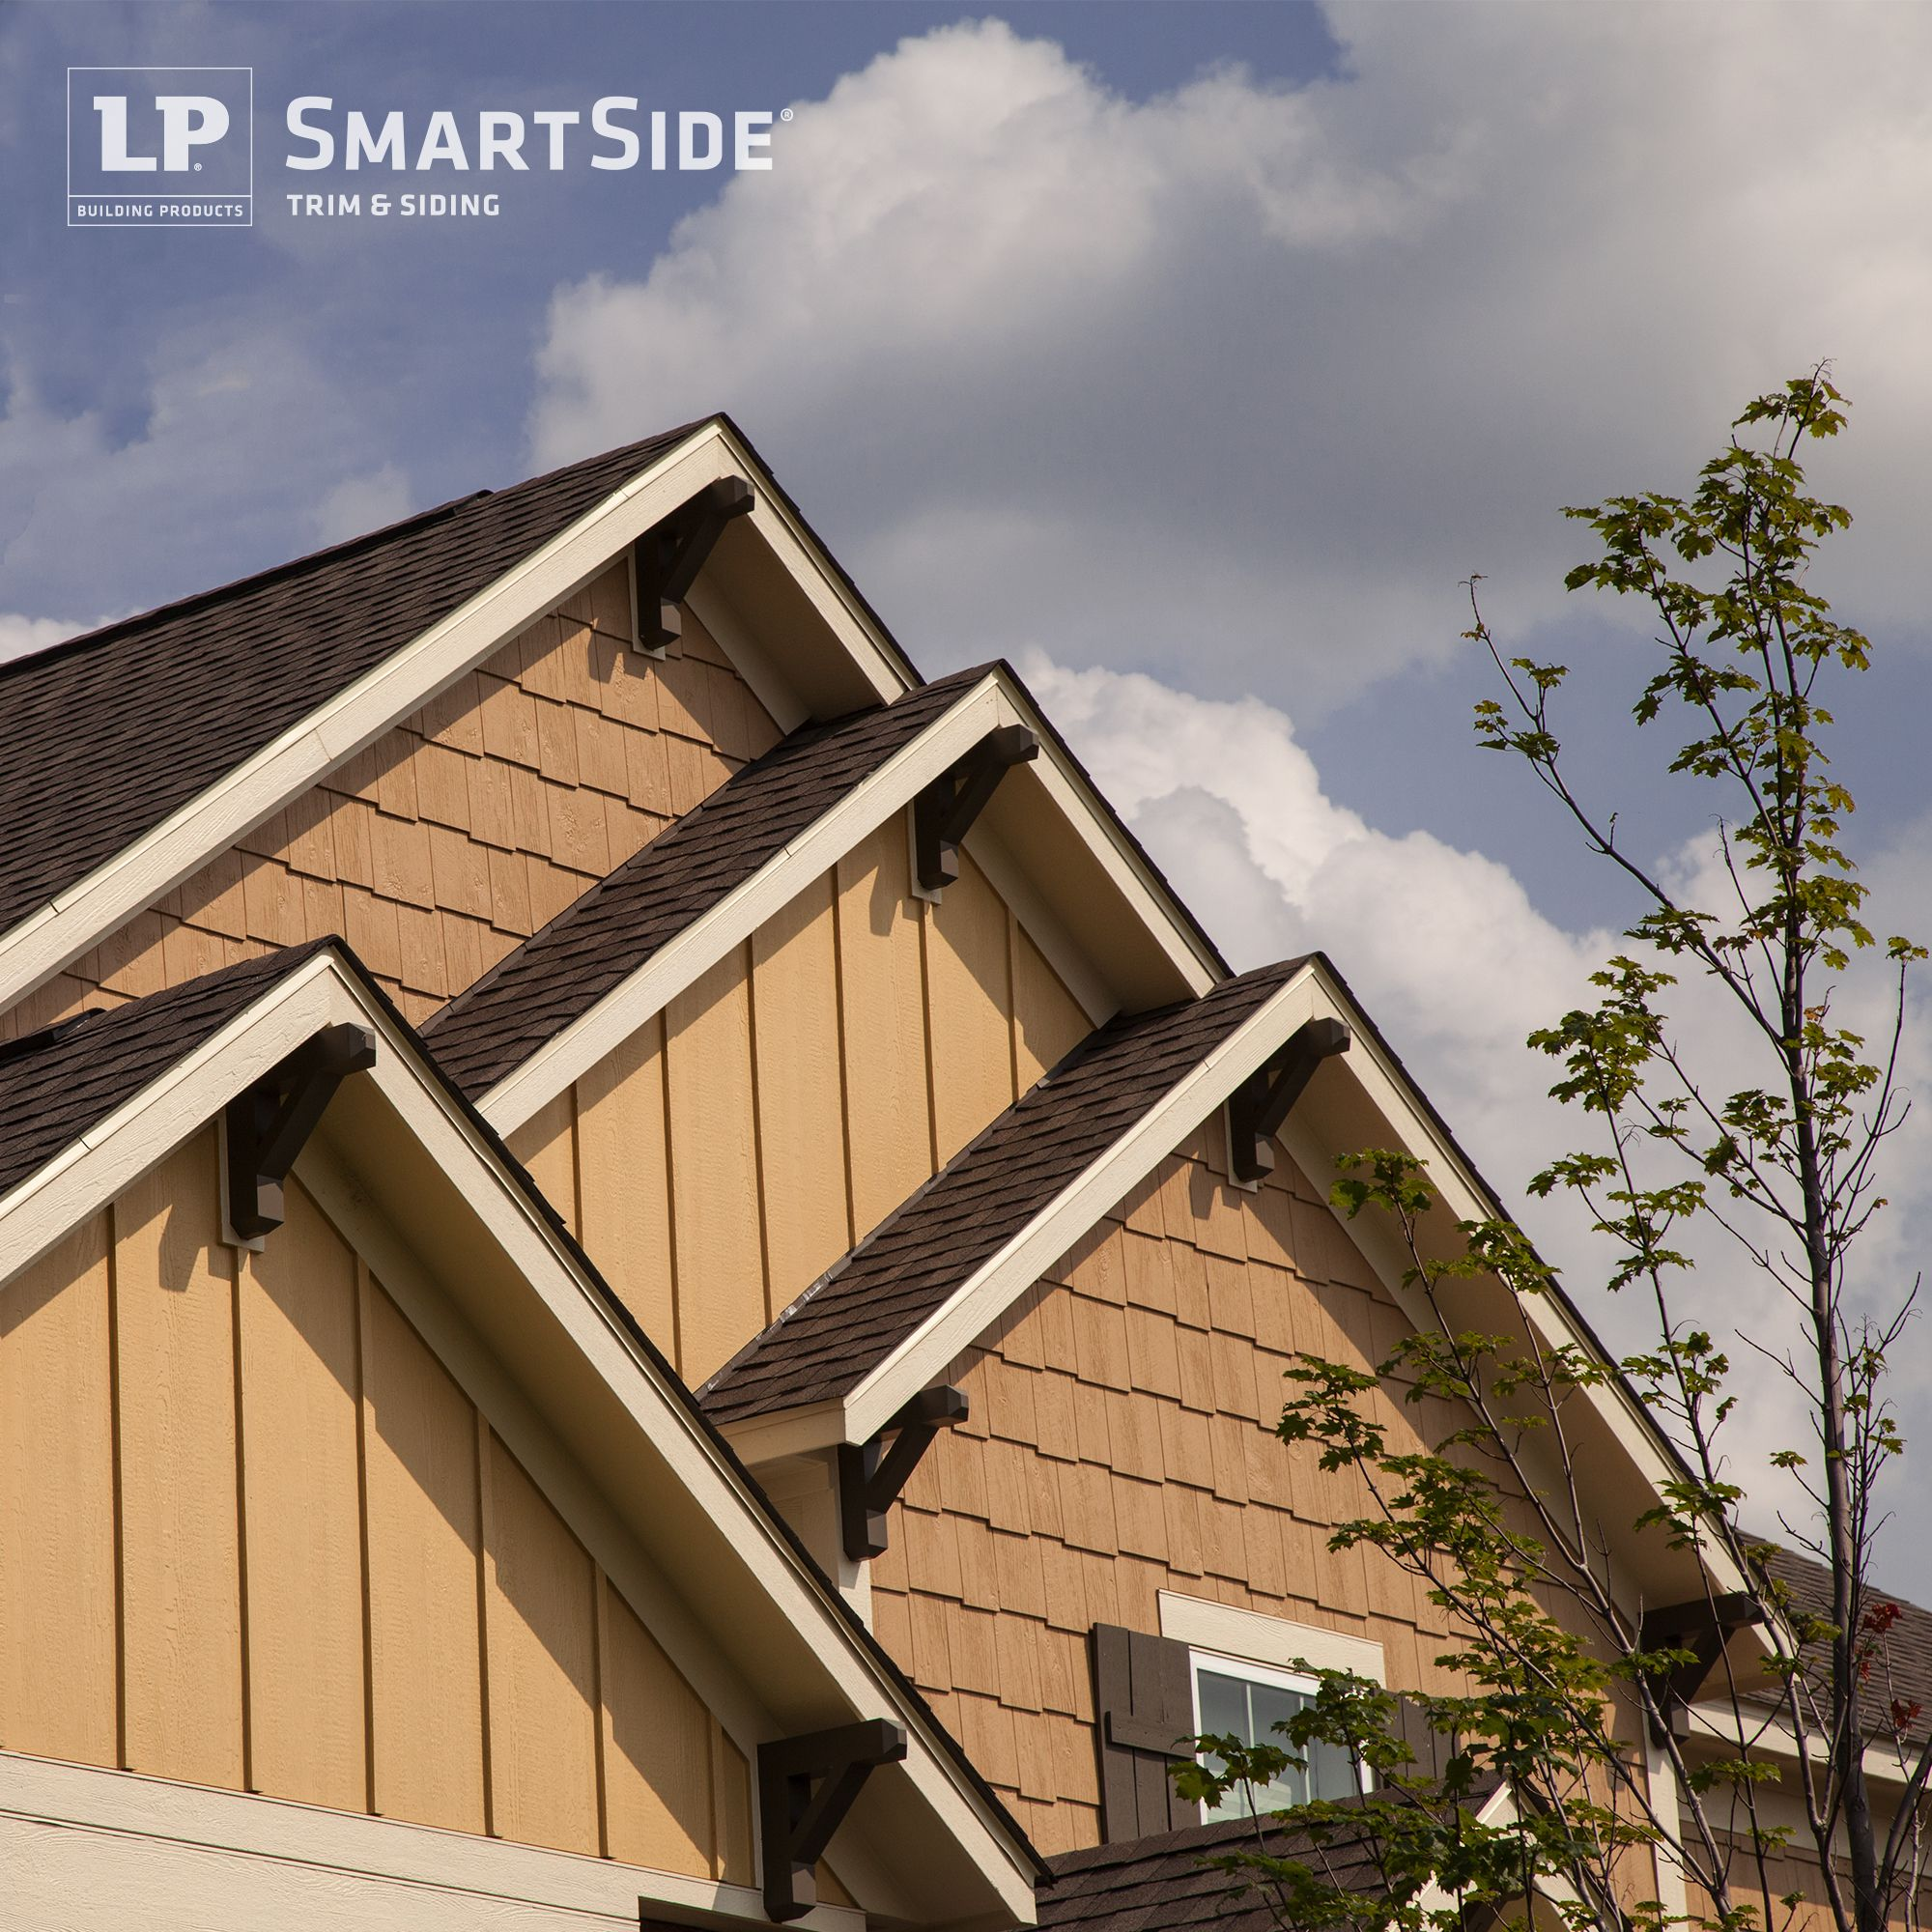 A Staggering Of Lp Smartside Cedar Shakes And Panel Siding Creates A Dramatic Look For The Exterior Of This Gorgeous Home Siding Trim Siding Siding Colors